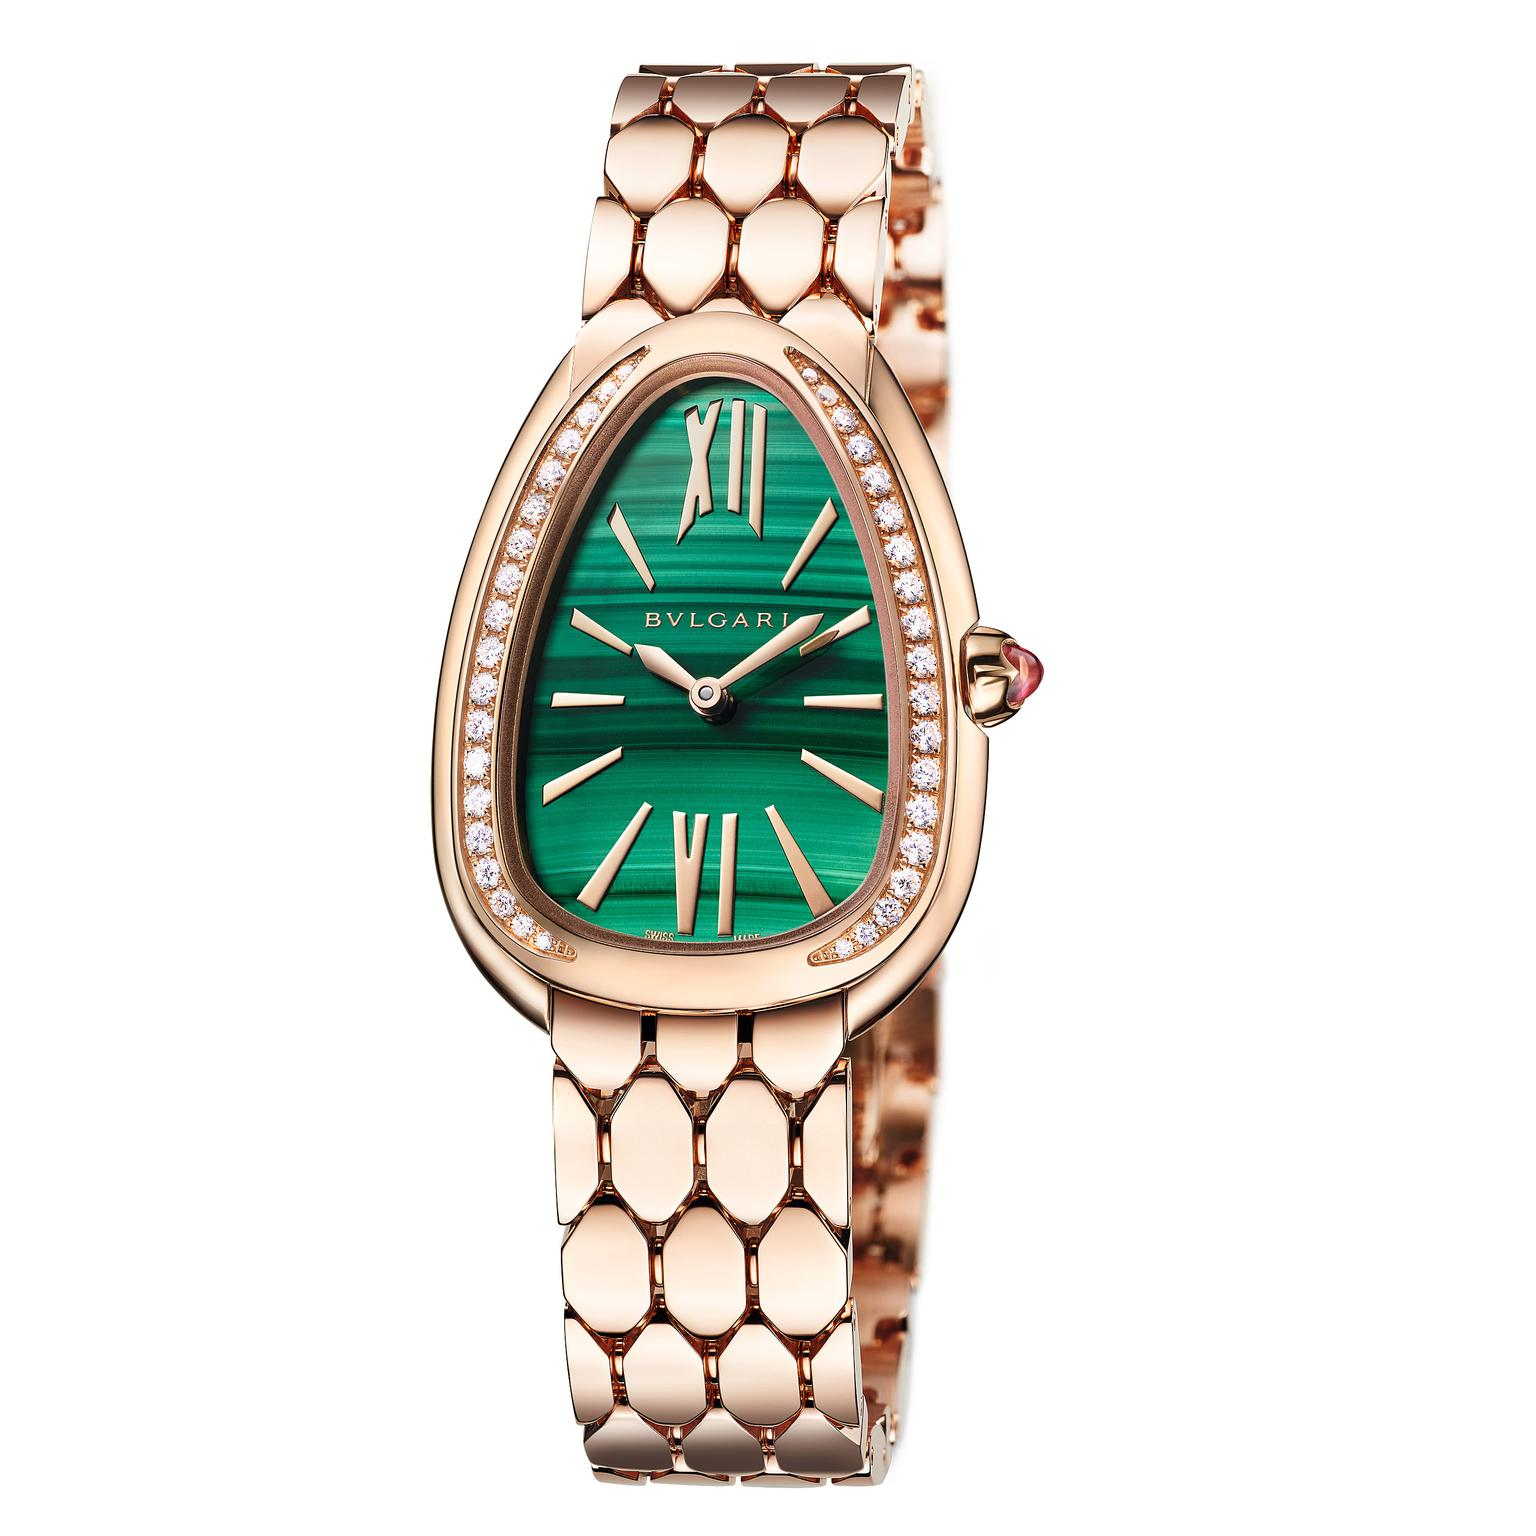 Bulgari Serpenti Seddutori rose gold watch with scale-like bracelet links